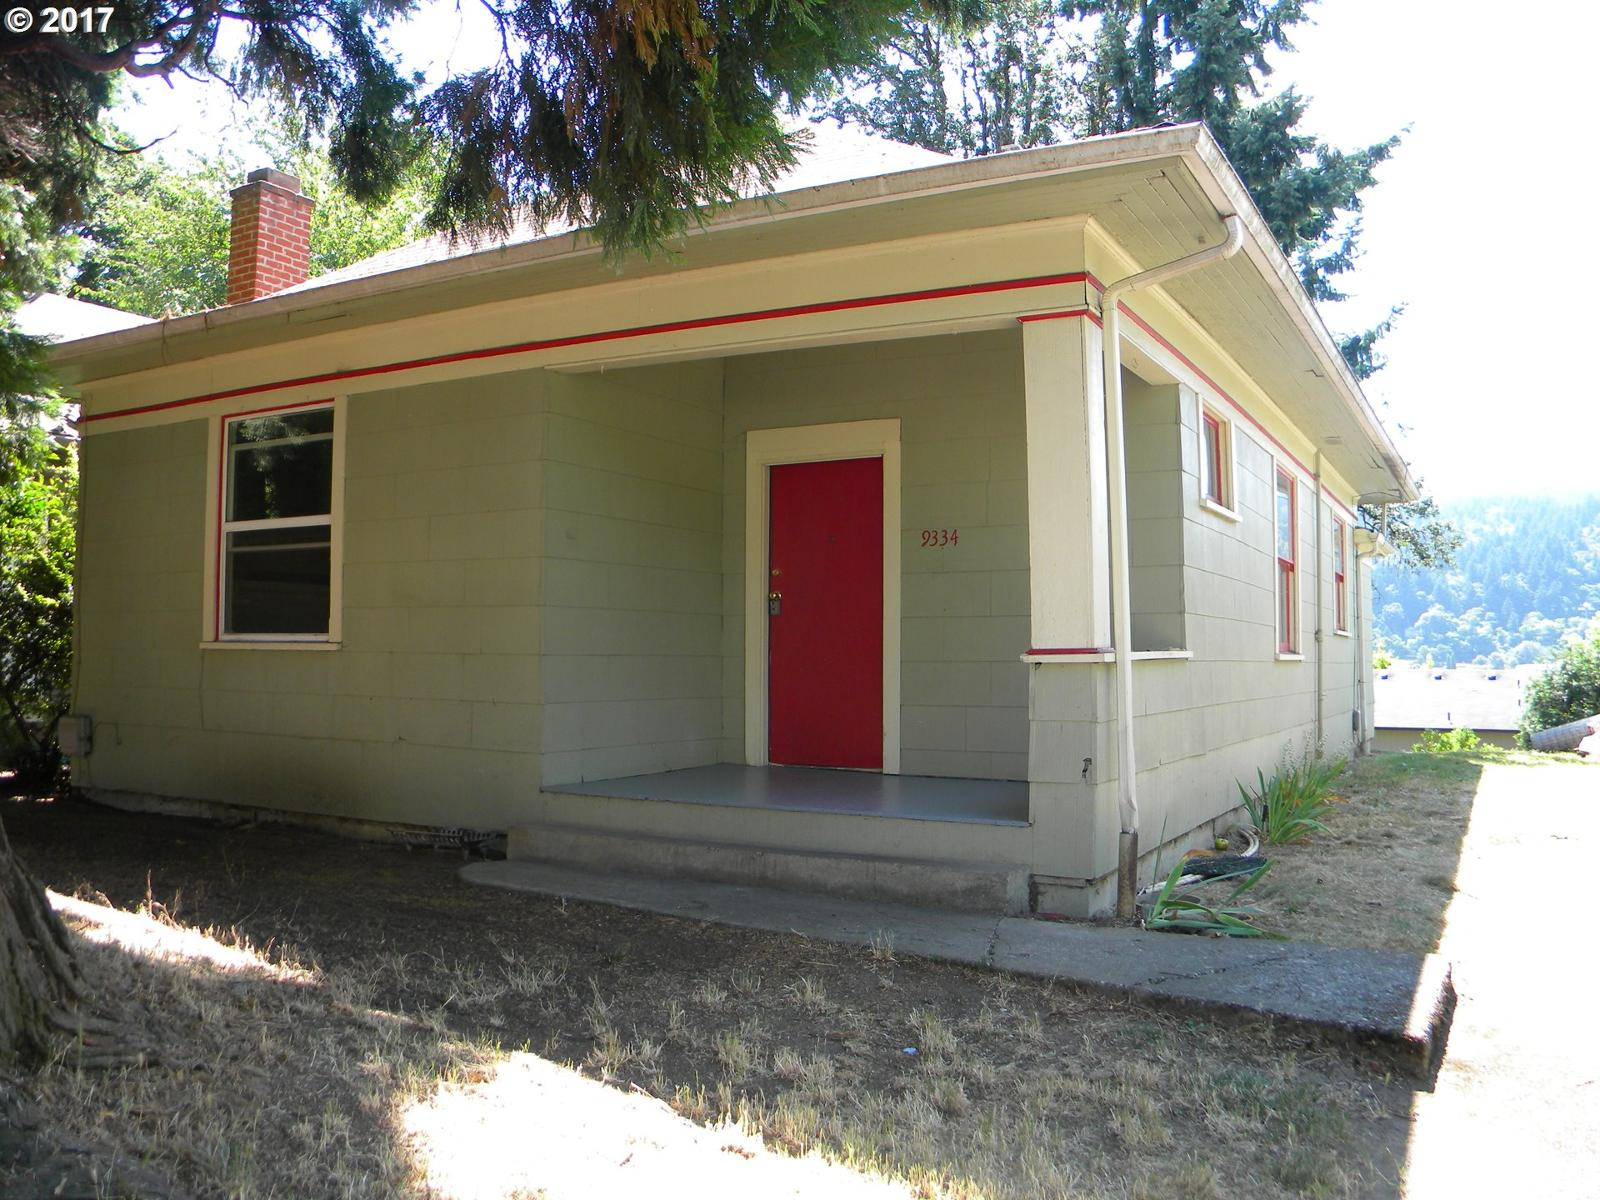 9334 n edison st portland or mls 17024318 better homes and garden sheds oregon - Garden Sheds Oregon